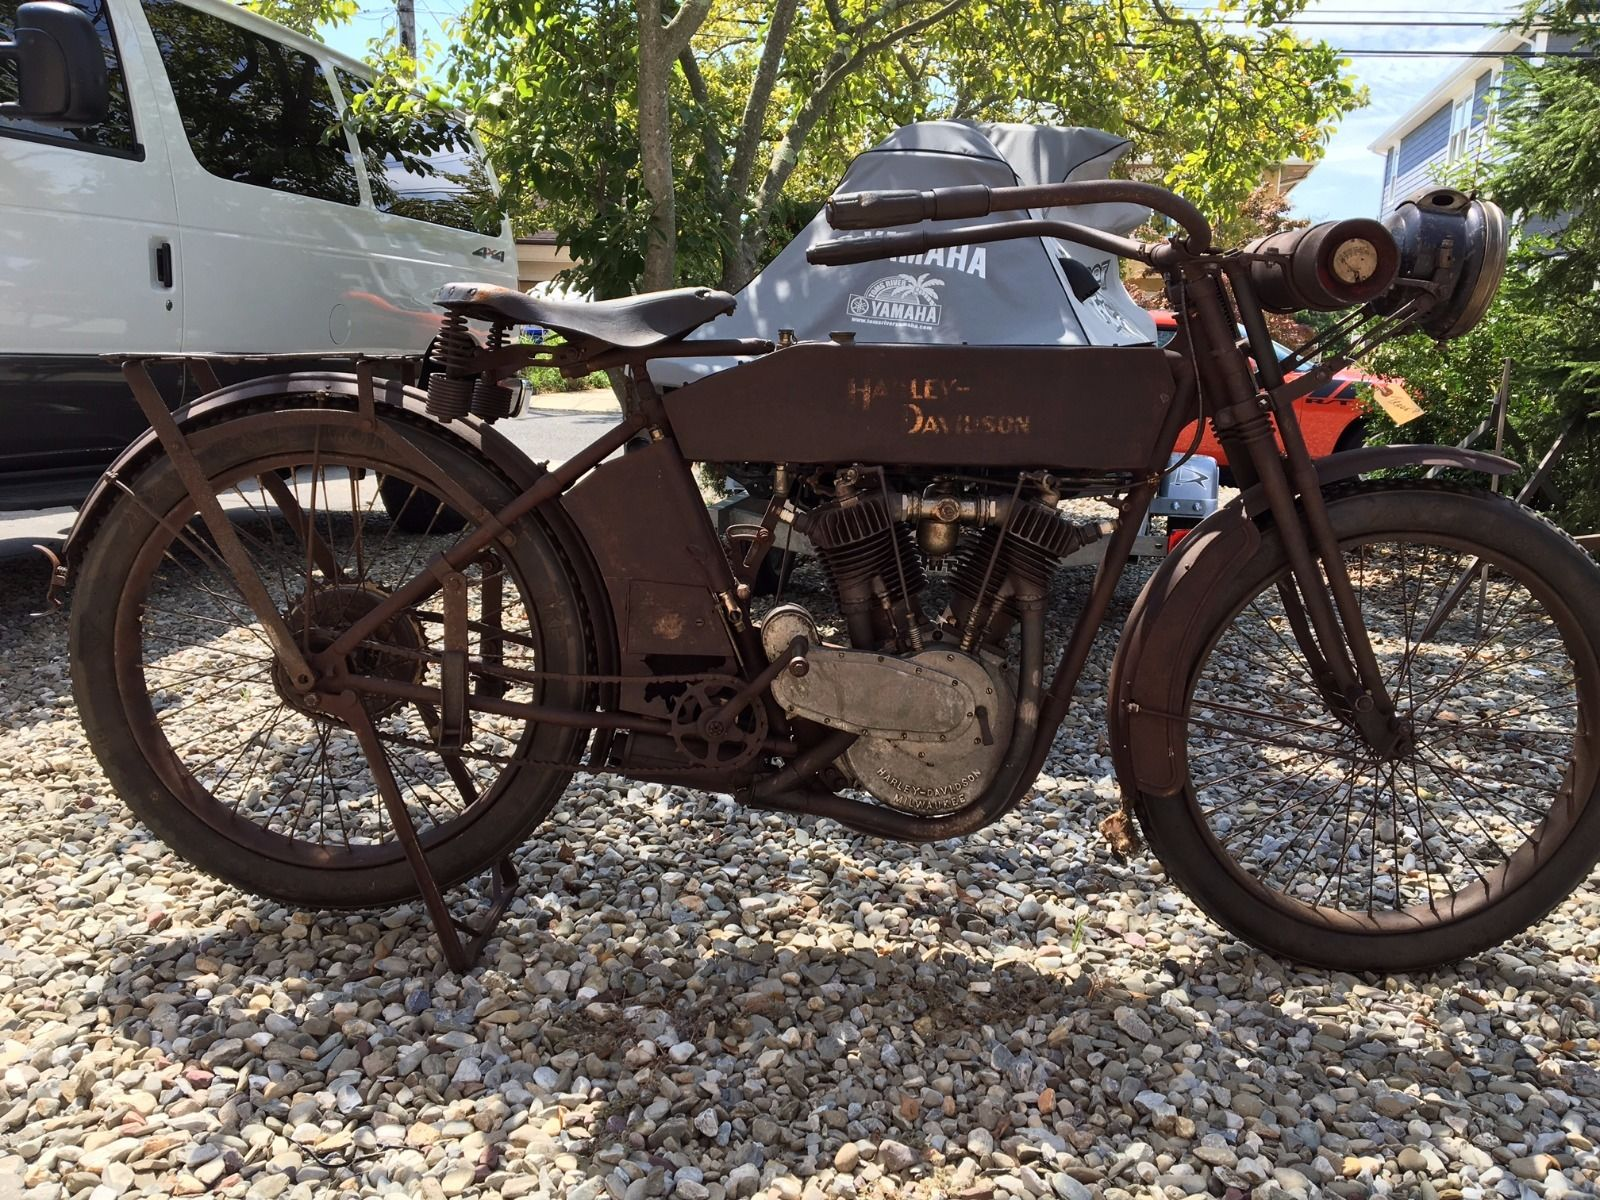 1913 Harley-Davidson V twin with the 811cc engine and Fully Floating Seat up for sale on eBay.